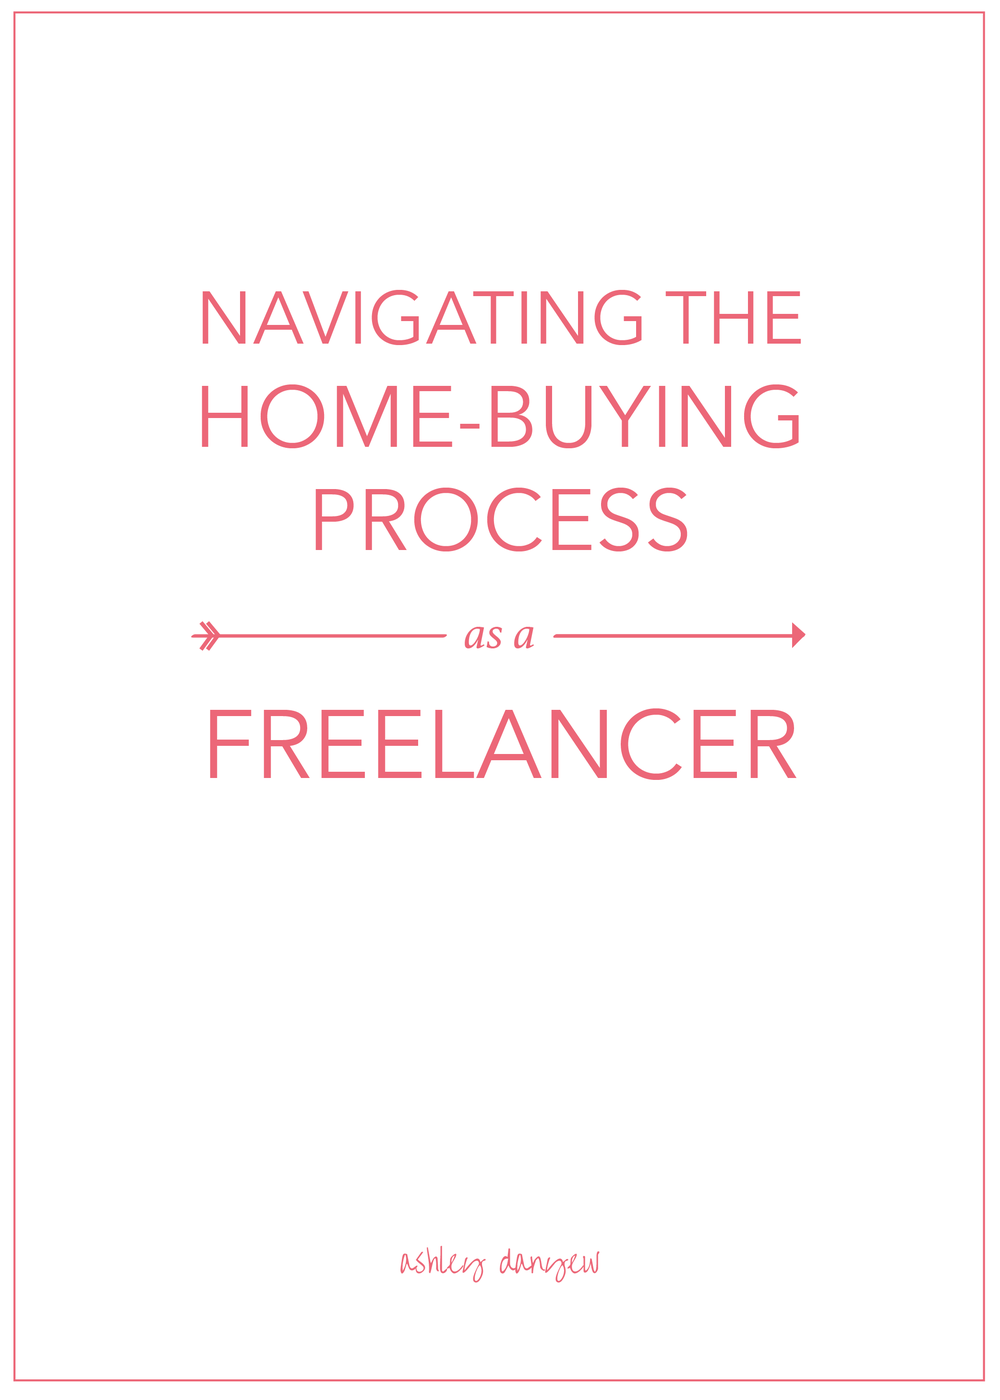 Navigating-the-Home-Buying-Process-as-a-Freelancer-01.png